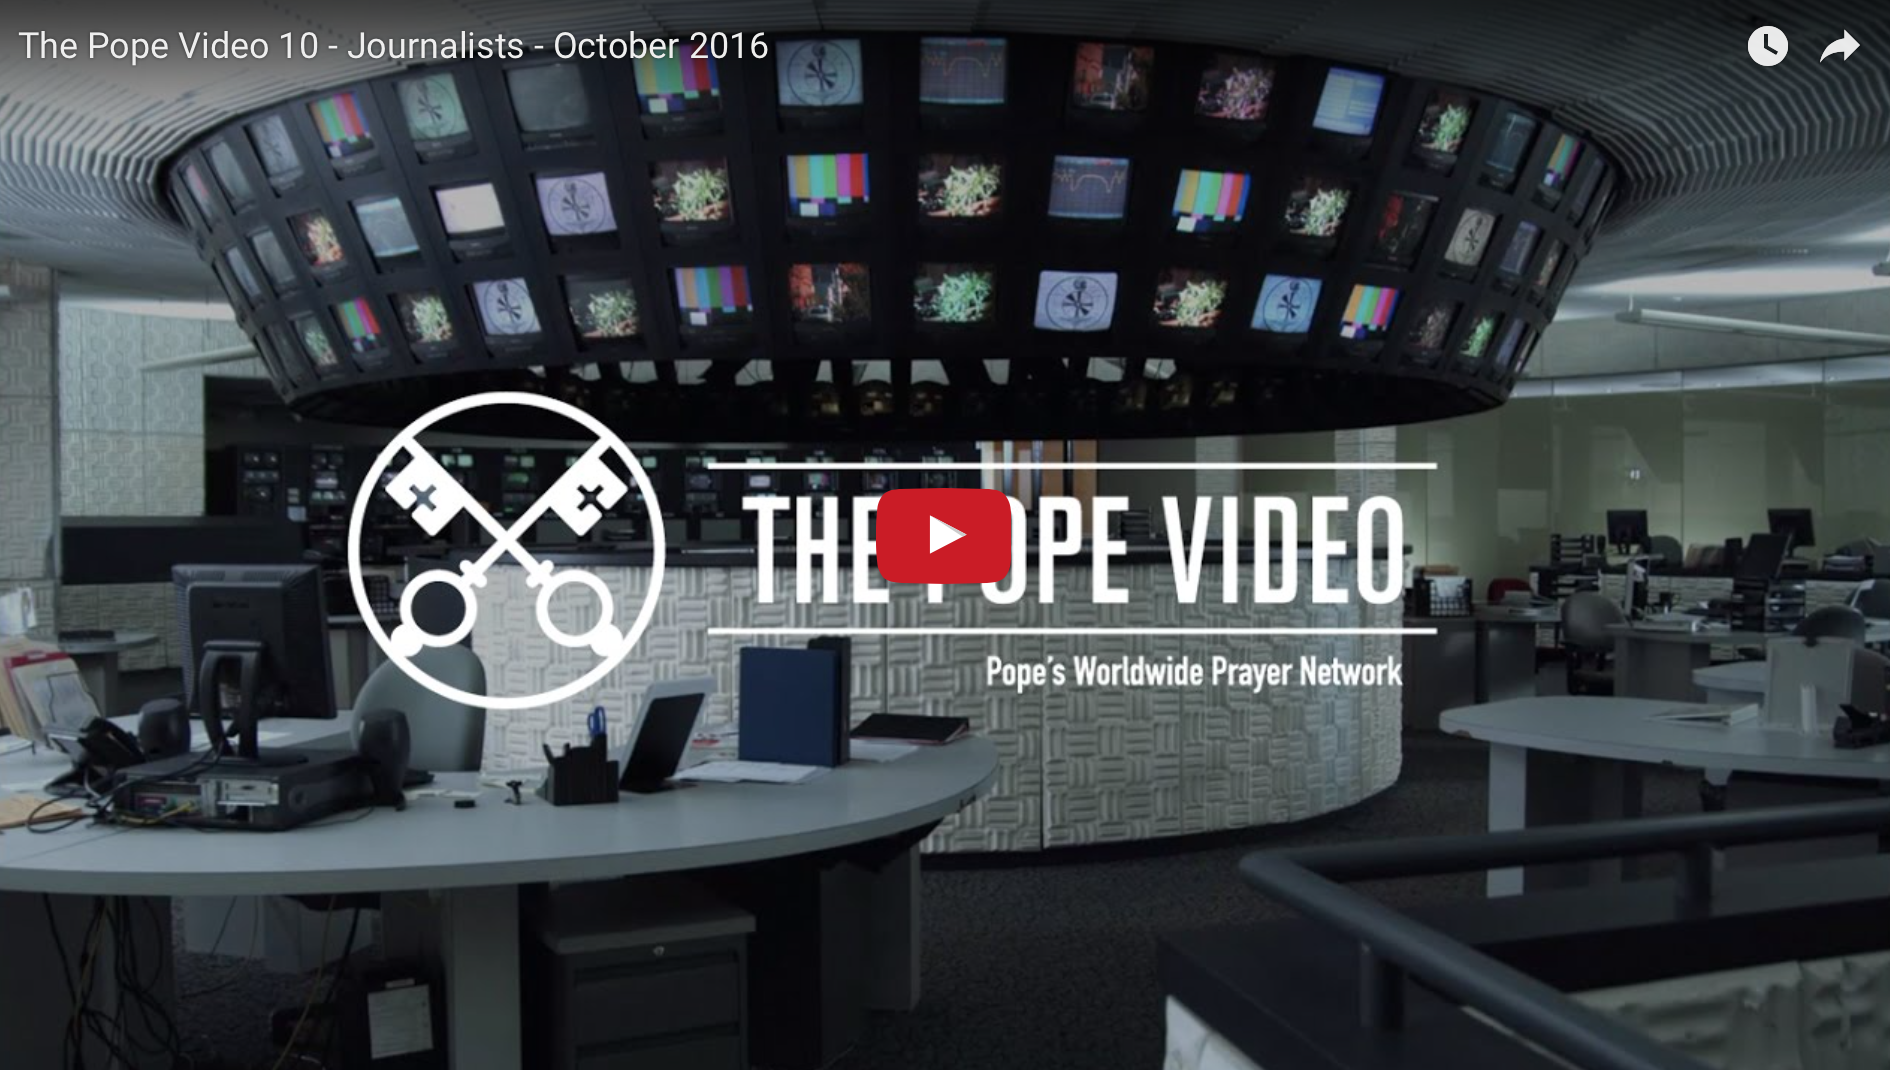 The Pope Video for October 2016: Journalists